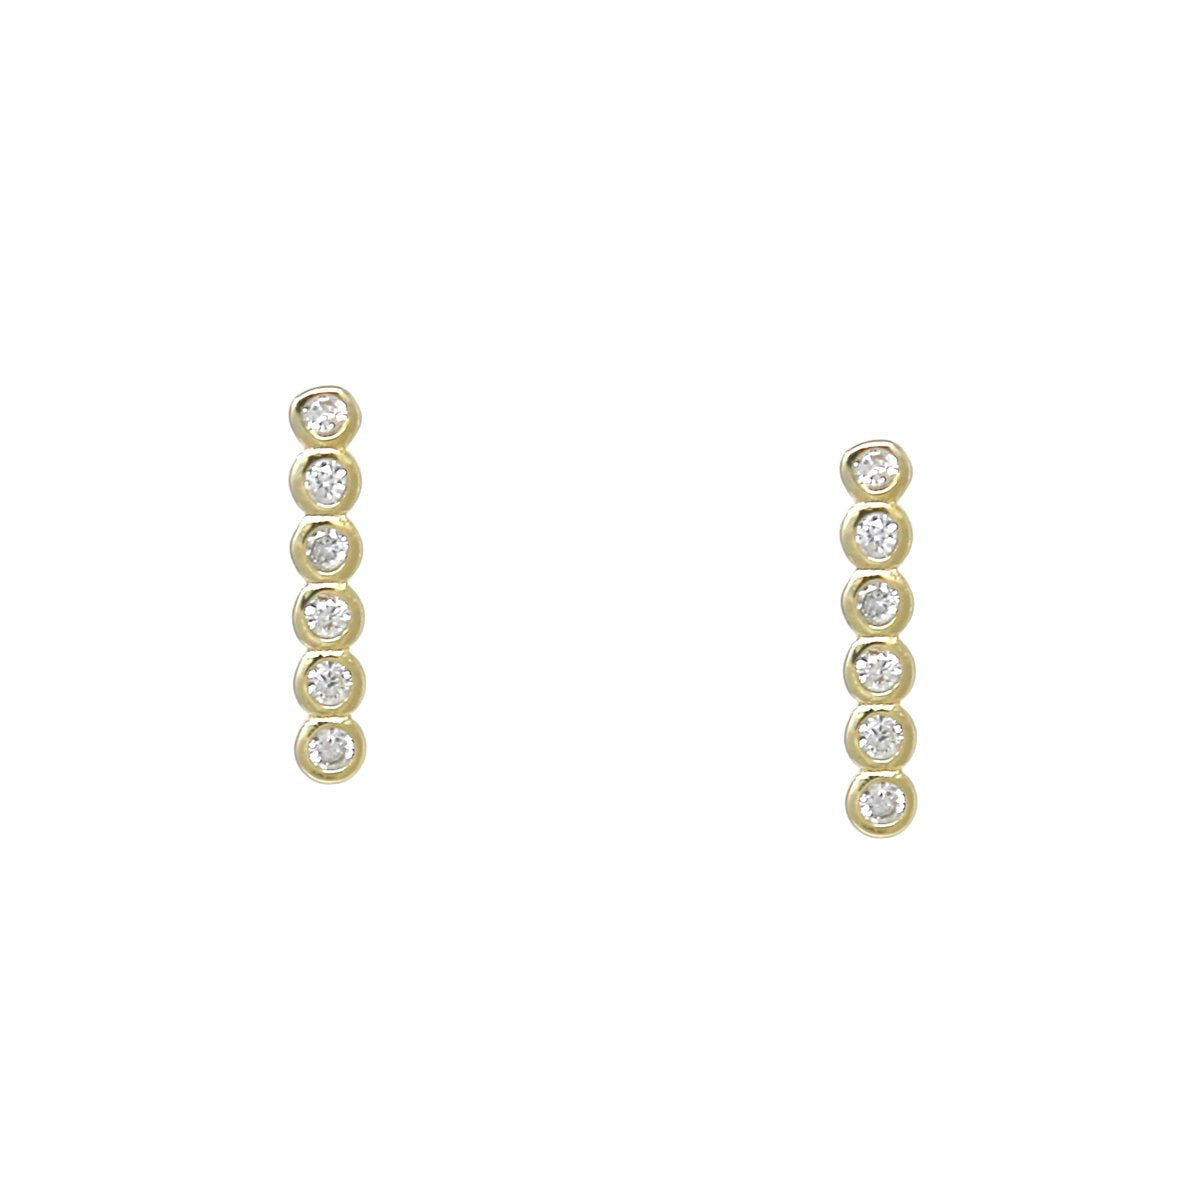 BITZ 925 STERLING SILVER CUBIC ZIRCONIA PAVE BAR STUD EARRINGS